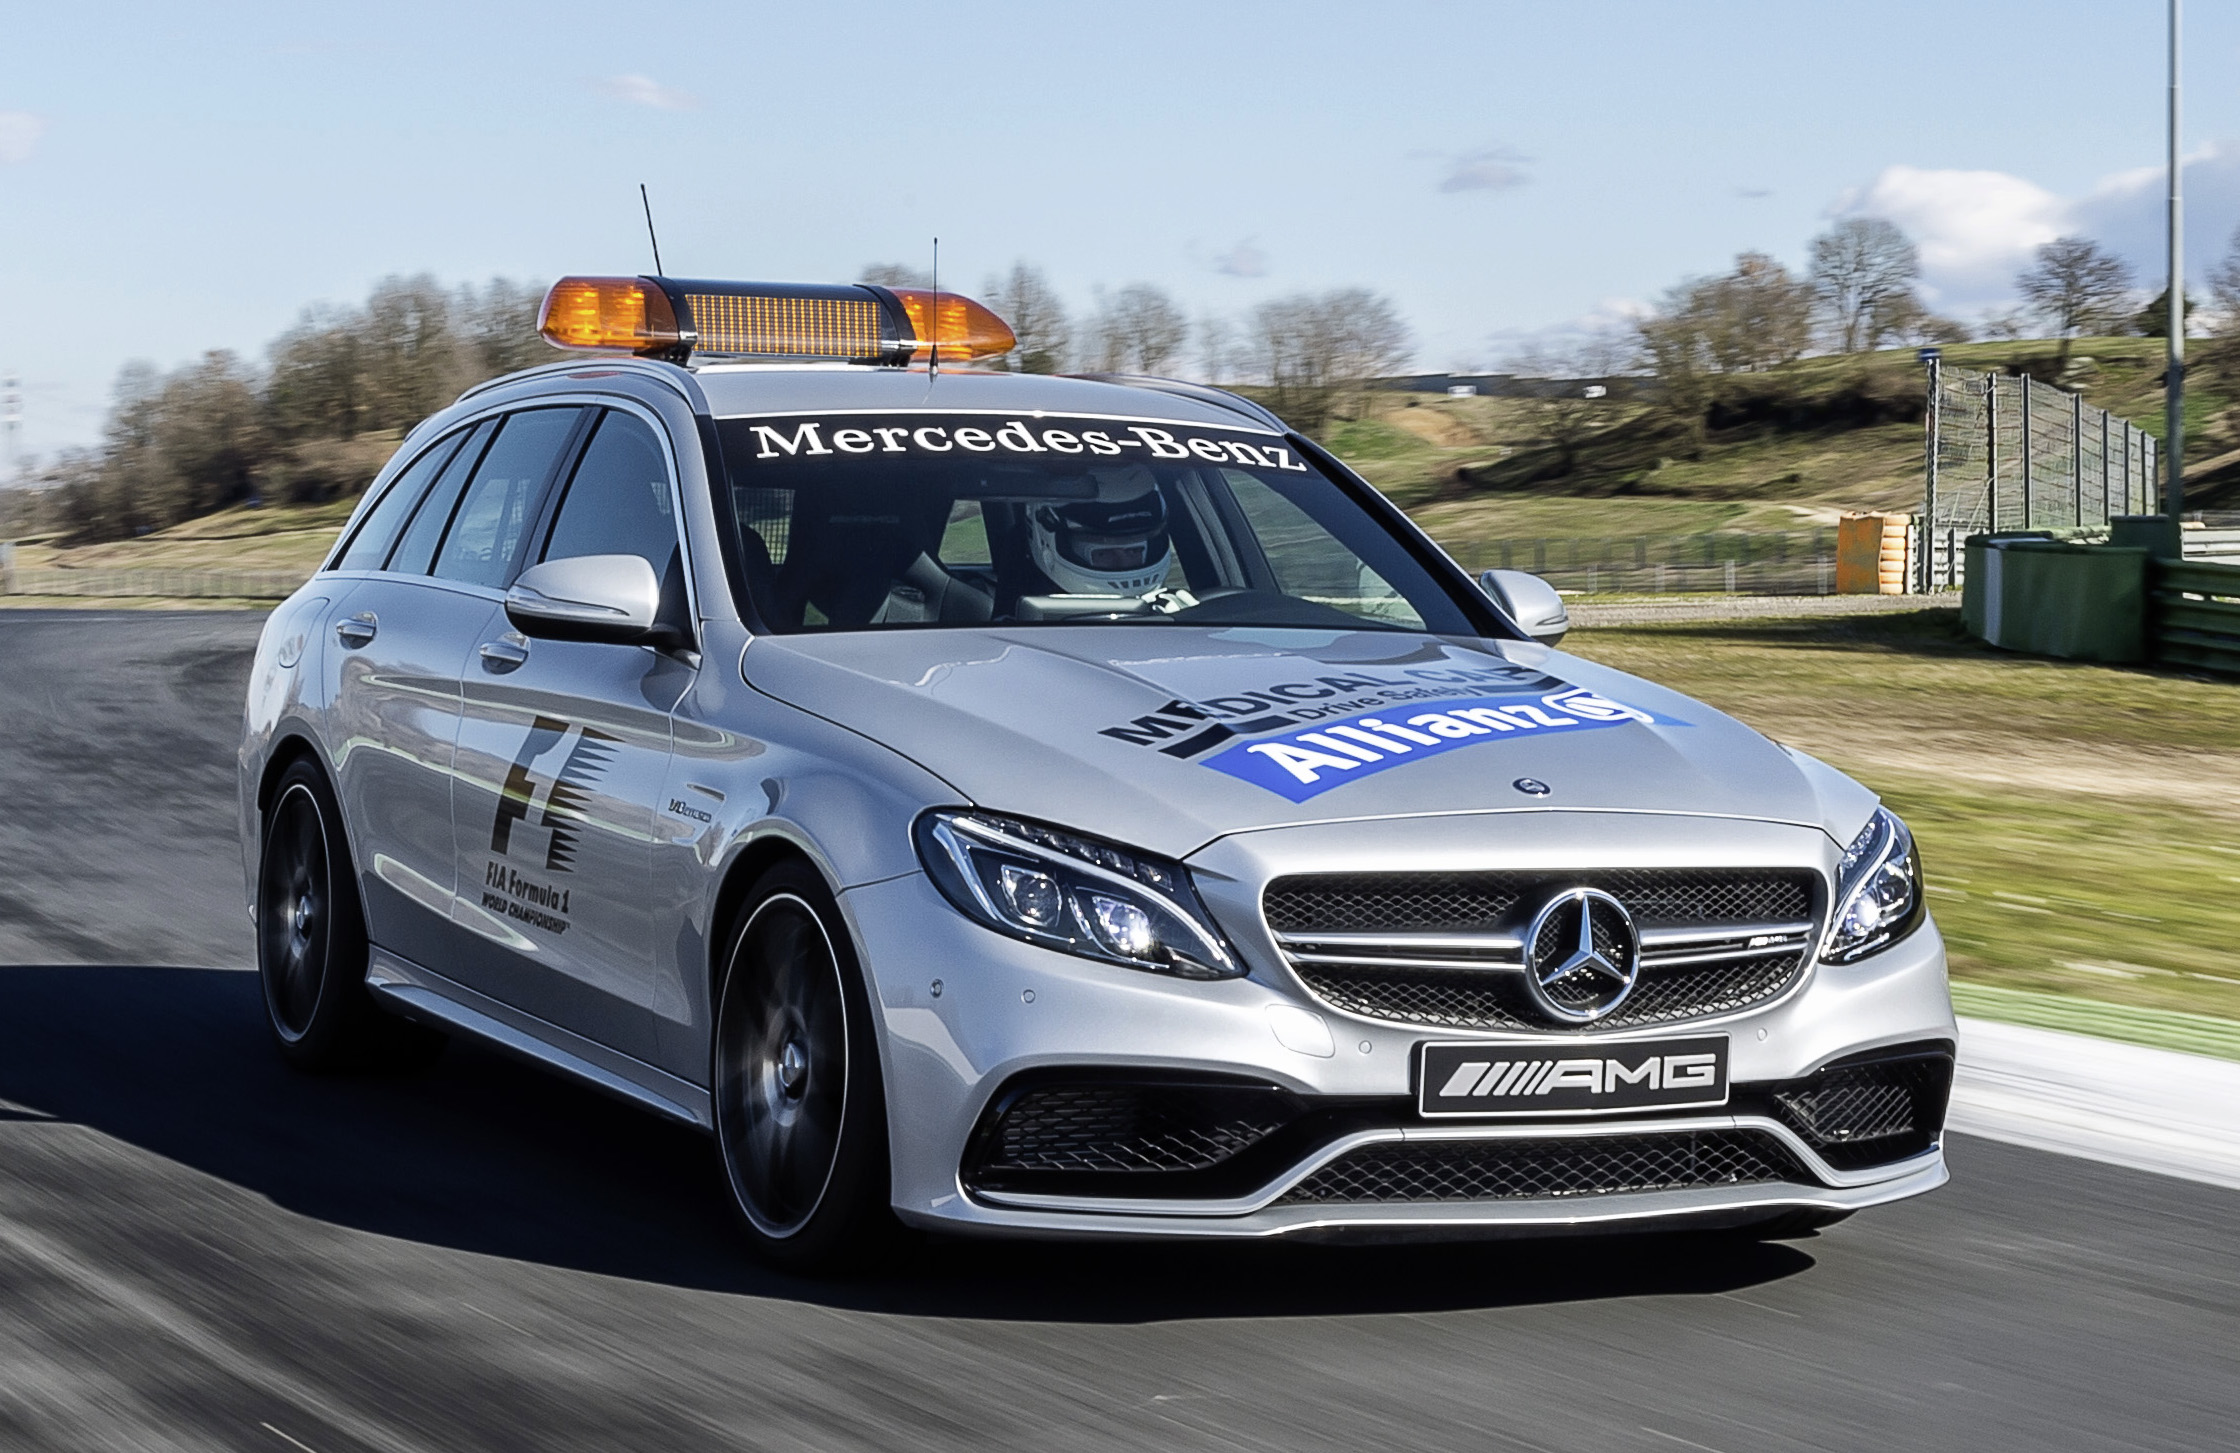 new f1 safety car and medical car unveiled for 2015 mercedes amg gt s and c 63 s estate paul. Black Bedroom Furniture Sets. Home Design Ideas